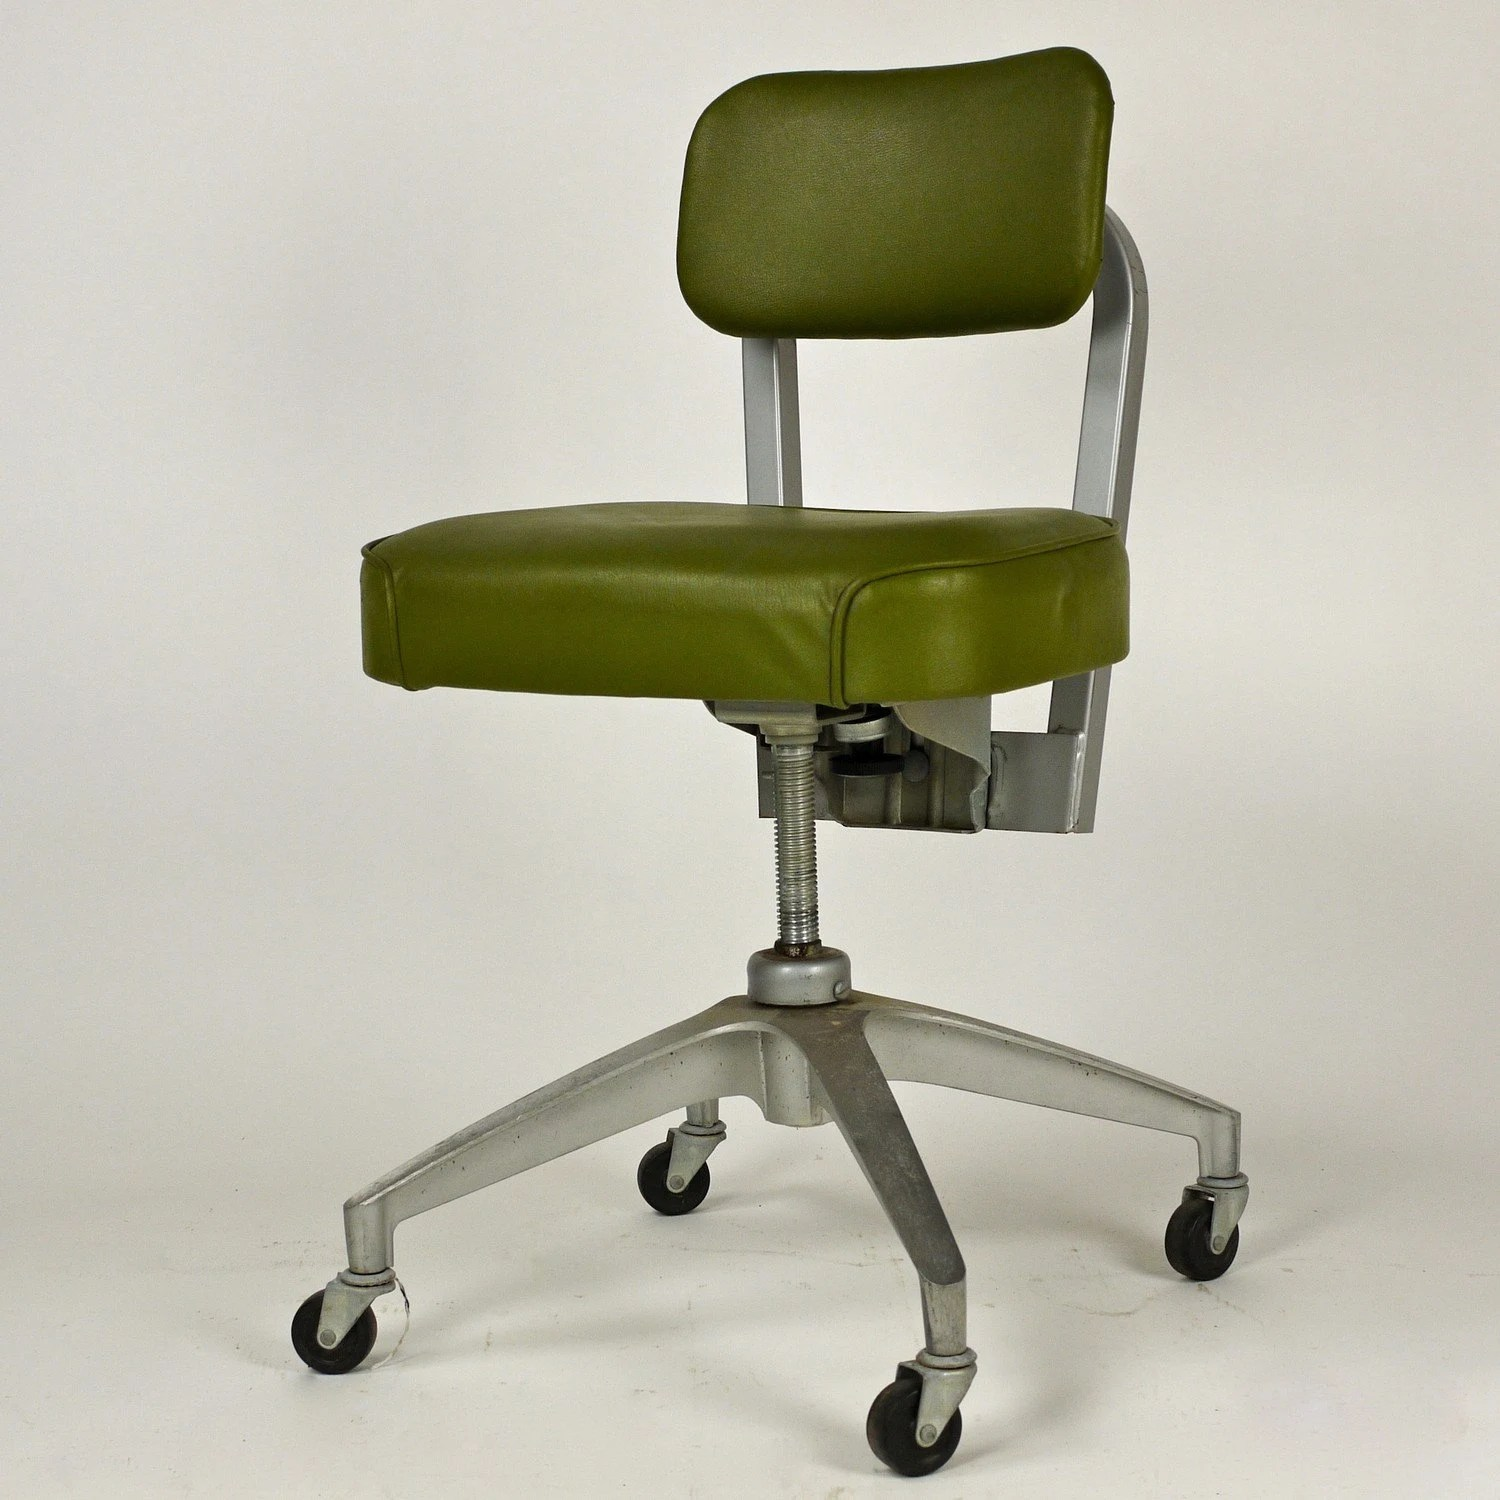 Vintage Swivel Chair Vintage 1950s Cole Steel Swivel Metal Office Desk Chair